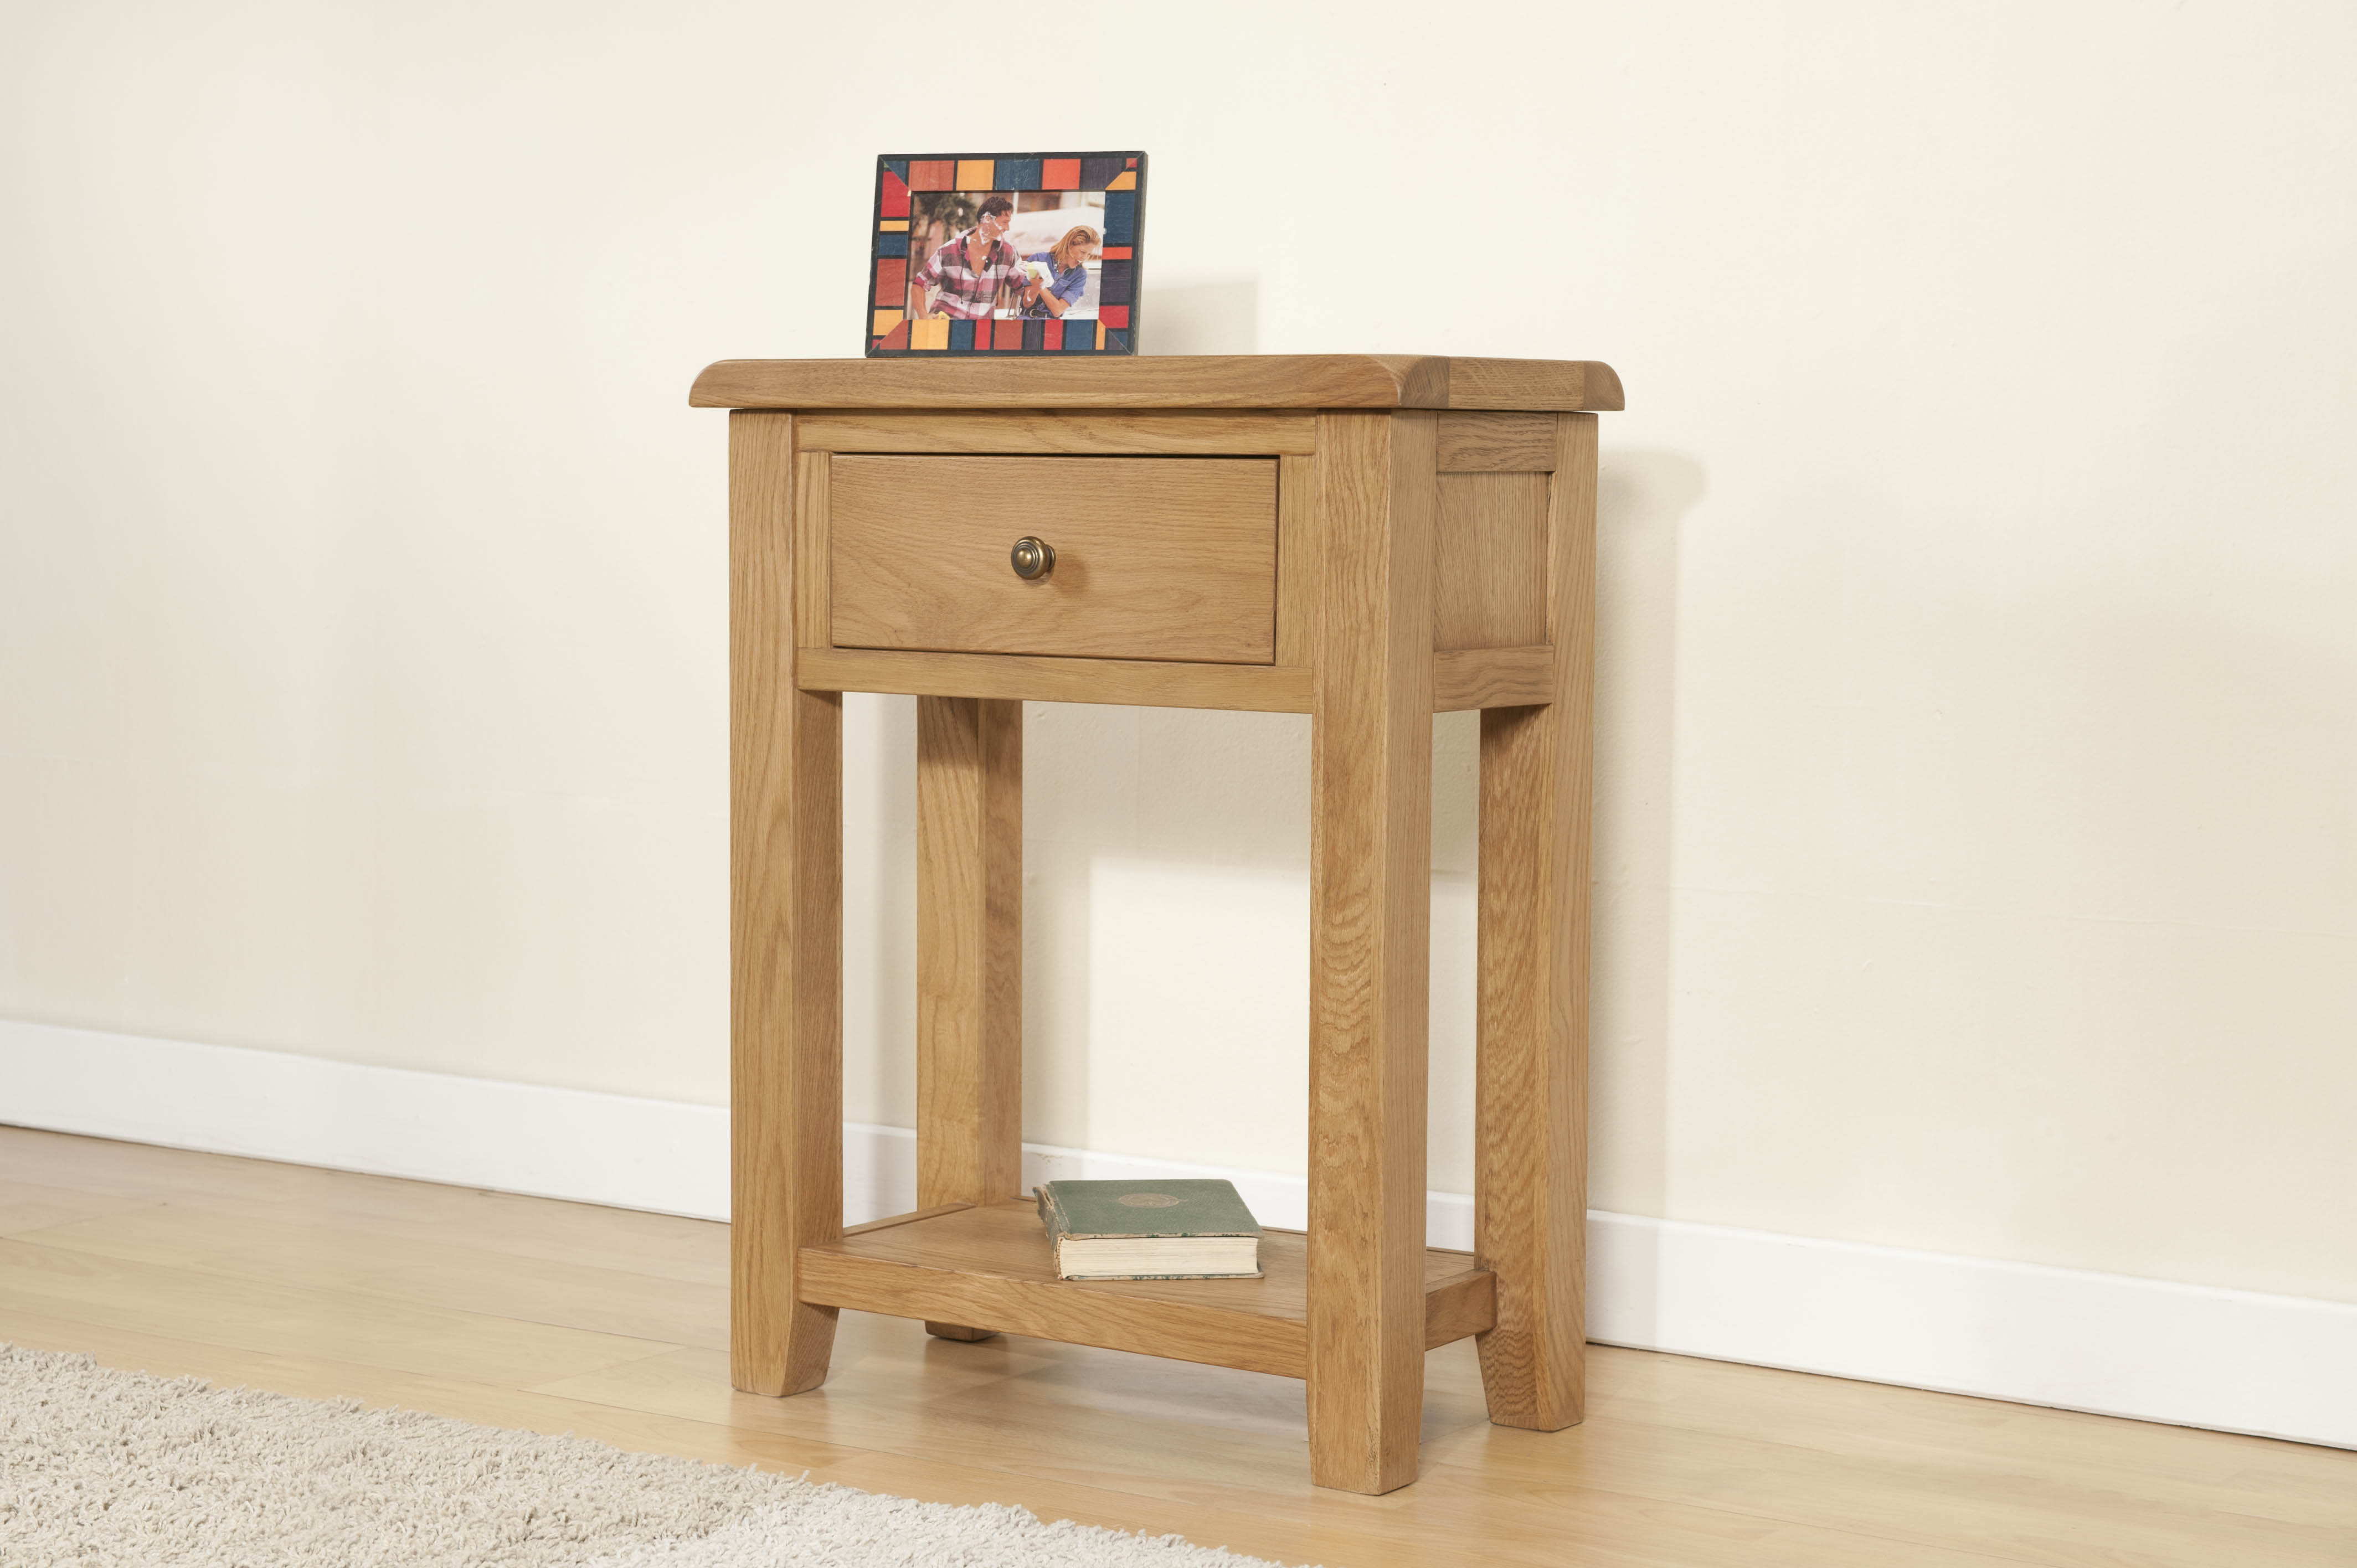 Shrewsbury Oak Small Console with 1 Drawer and Shelf (small console)